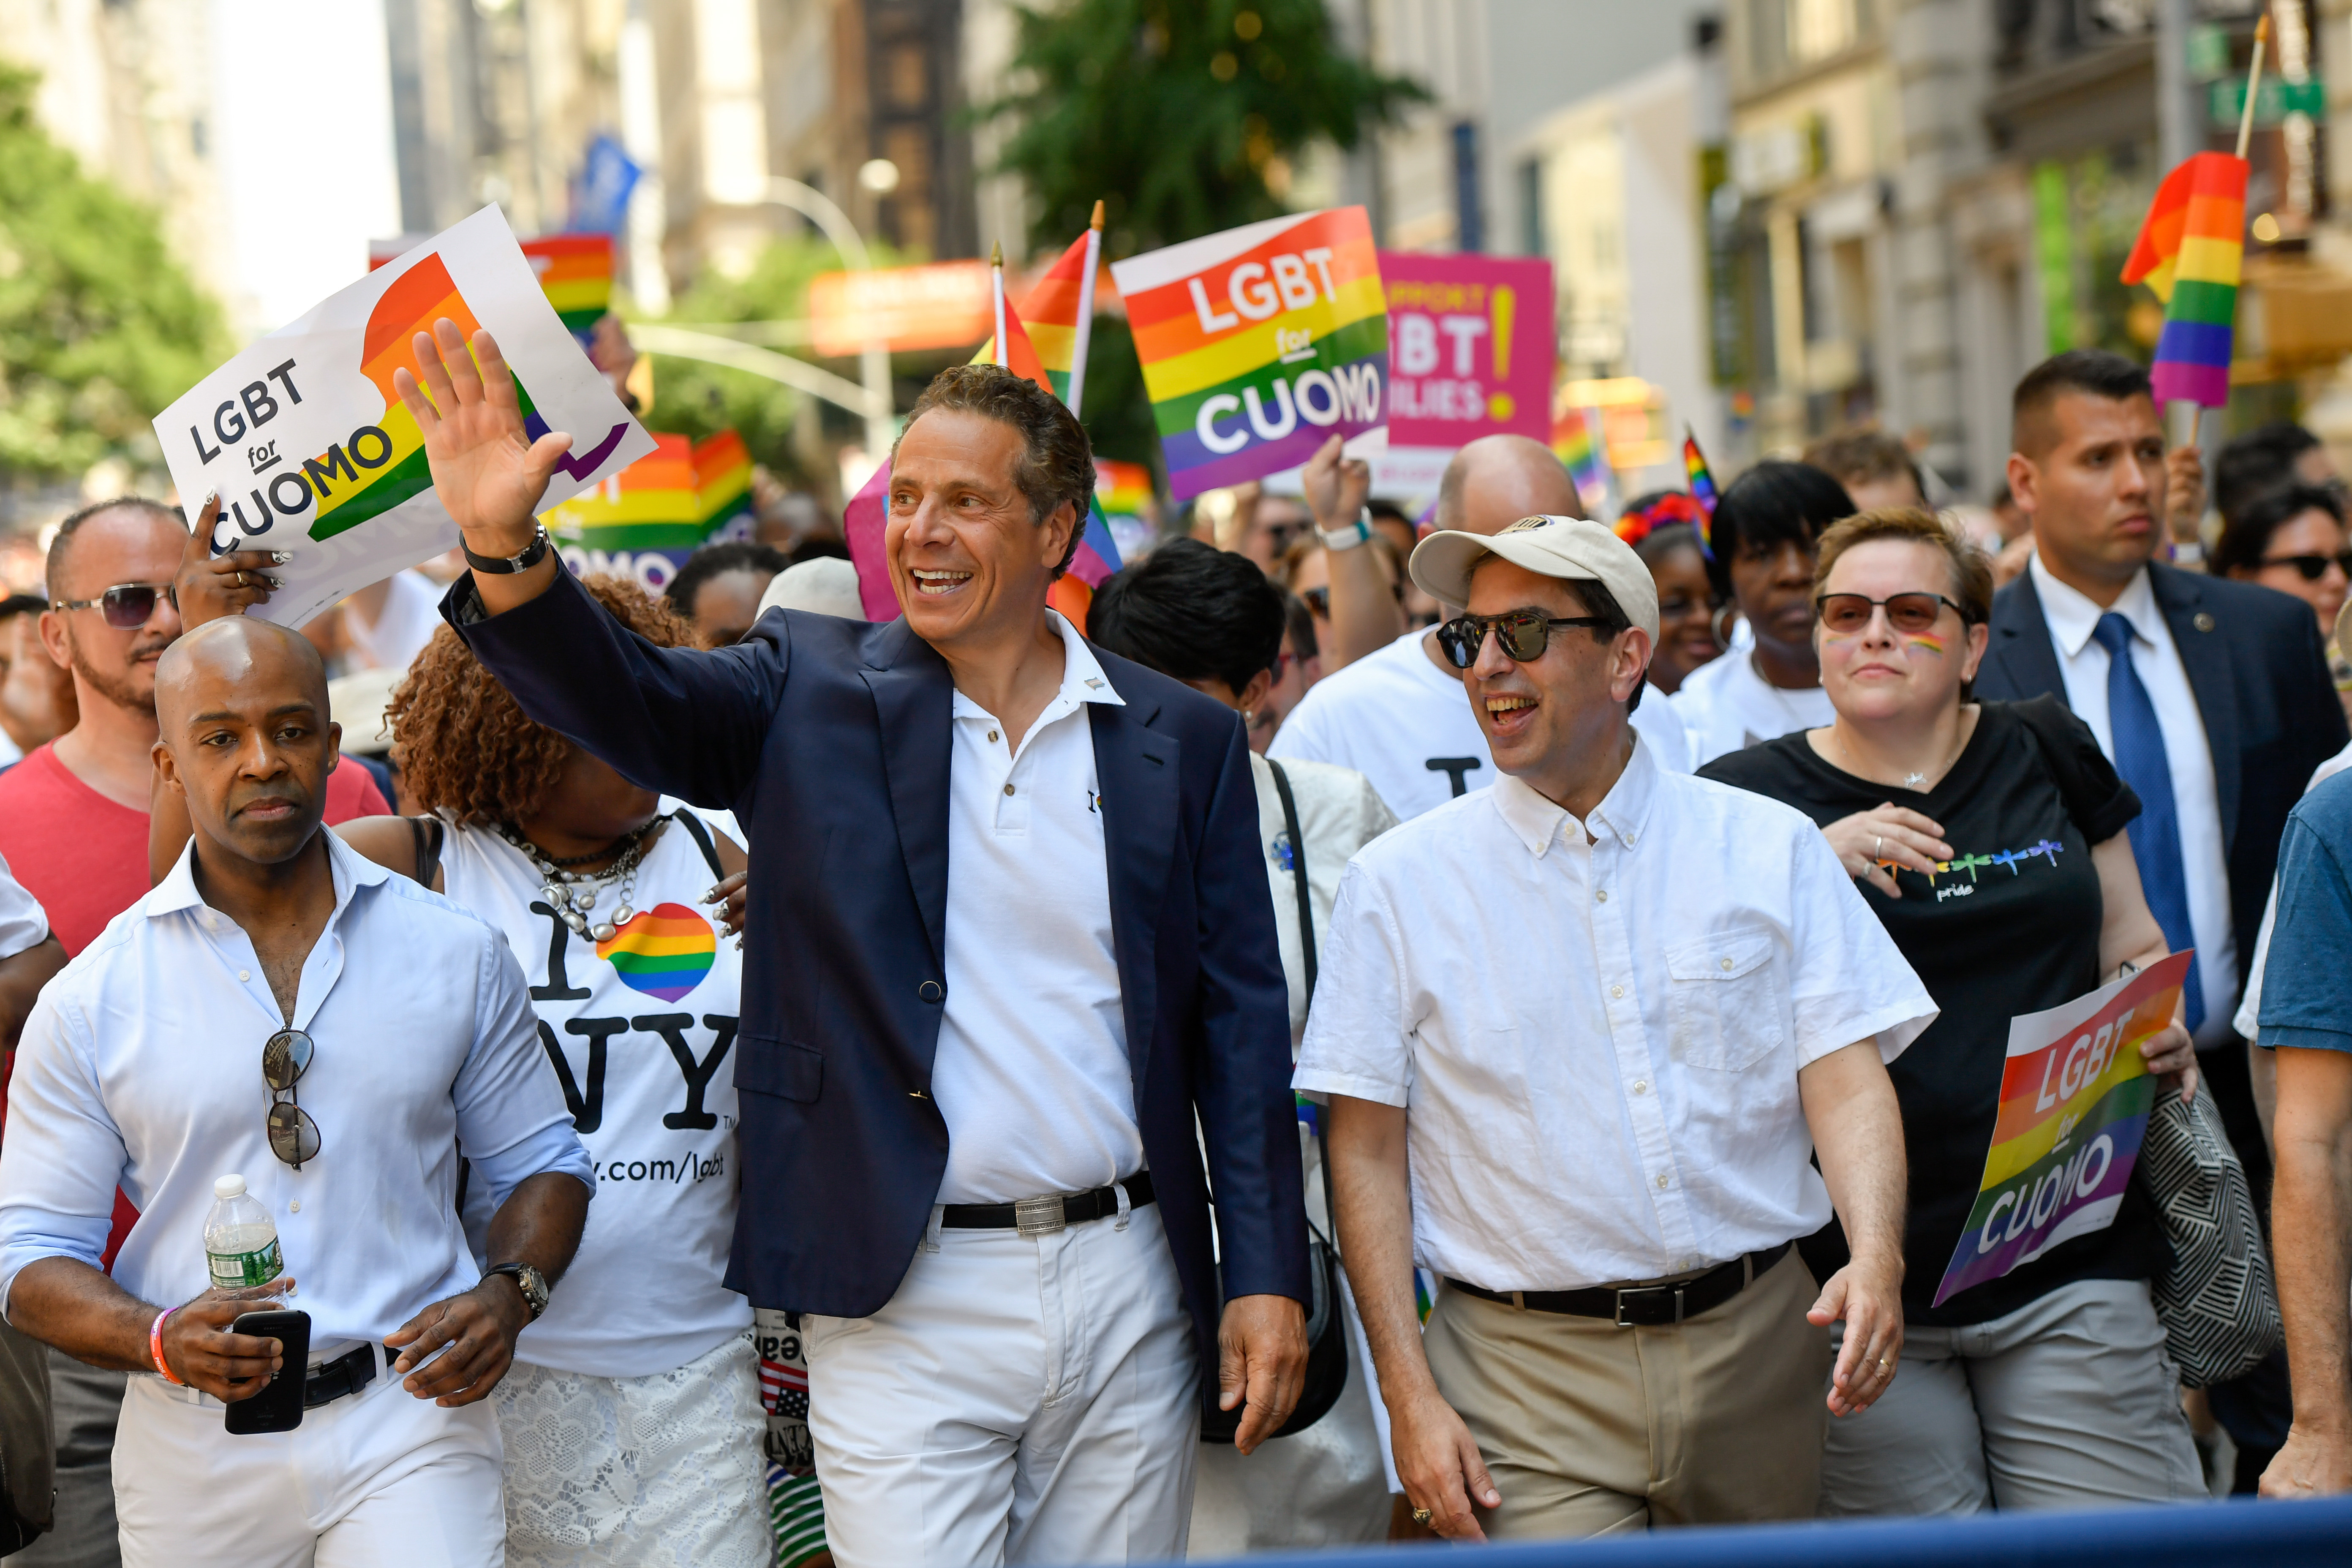 Gov. Andrew Cuomo marches in the 2017 Pride parade in Manhattan with then-counsel Alphonso David at left.